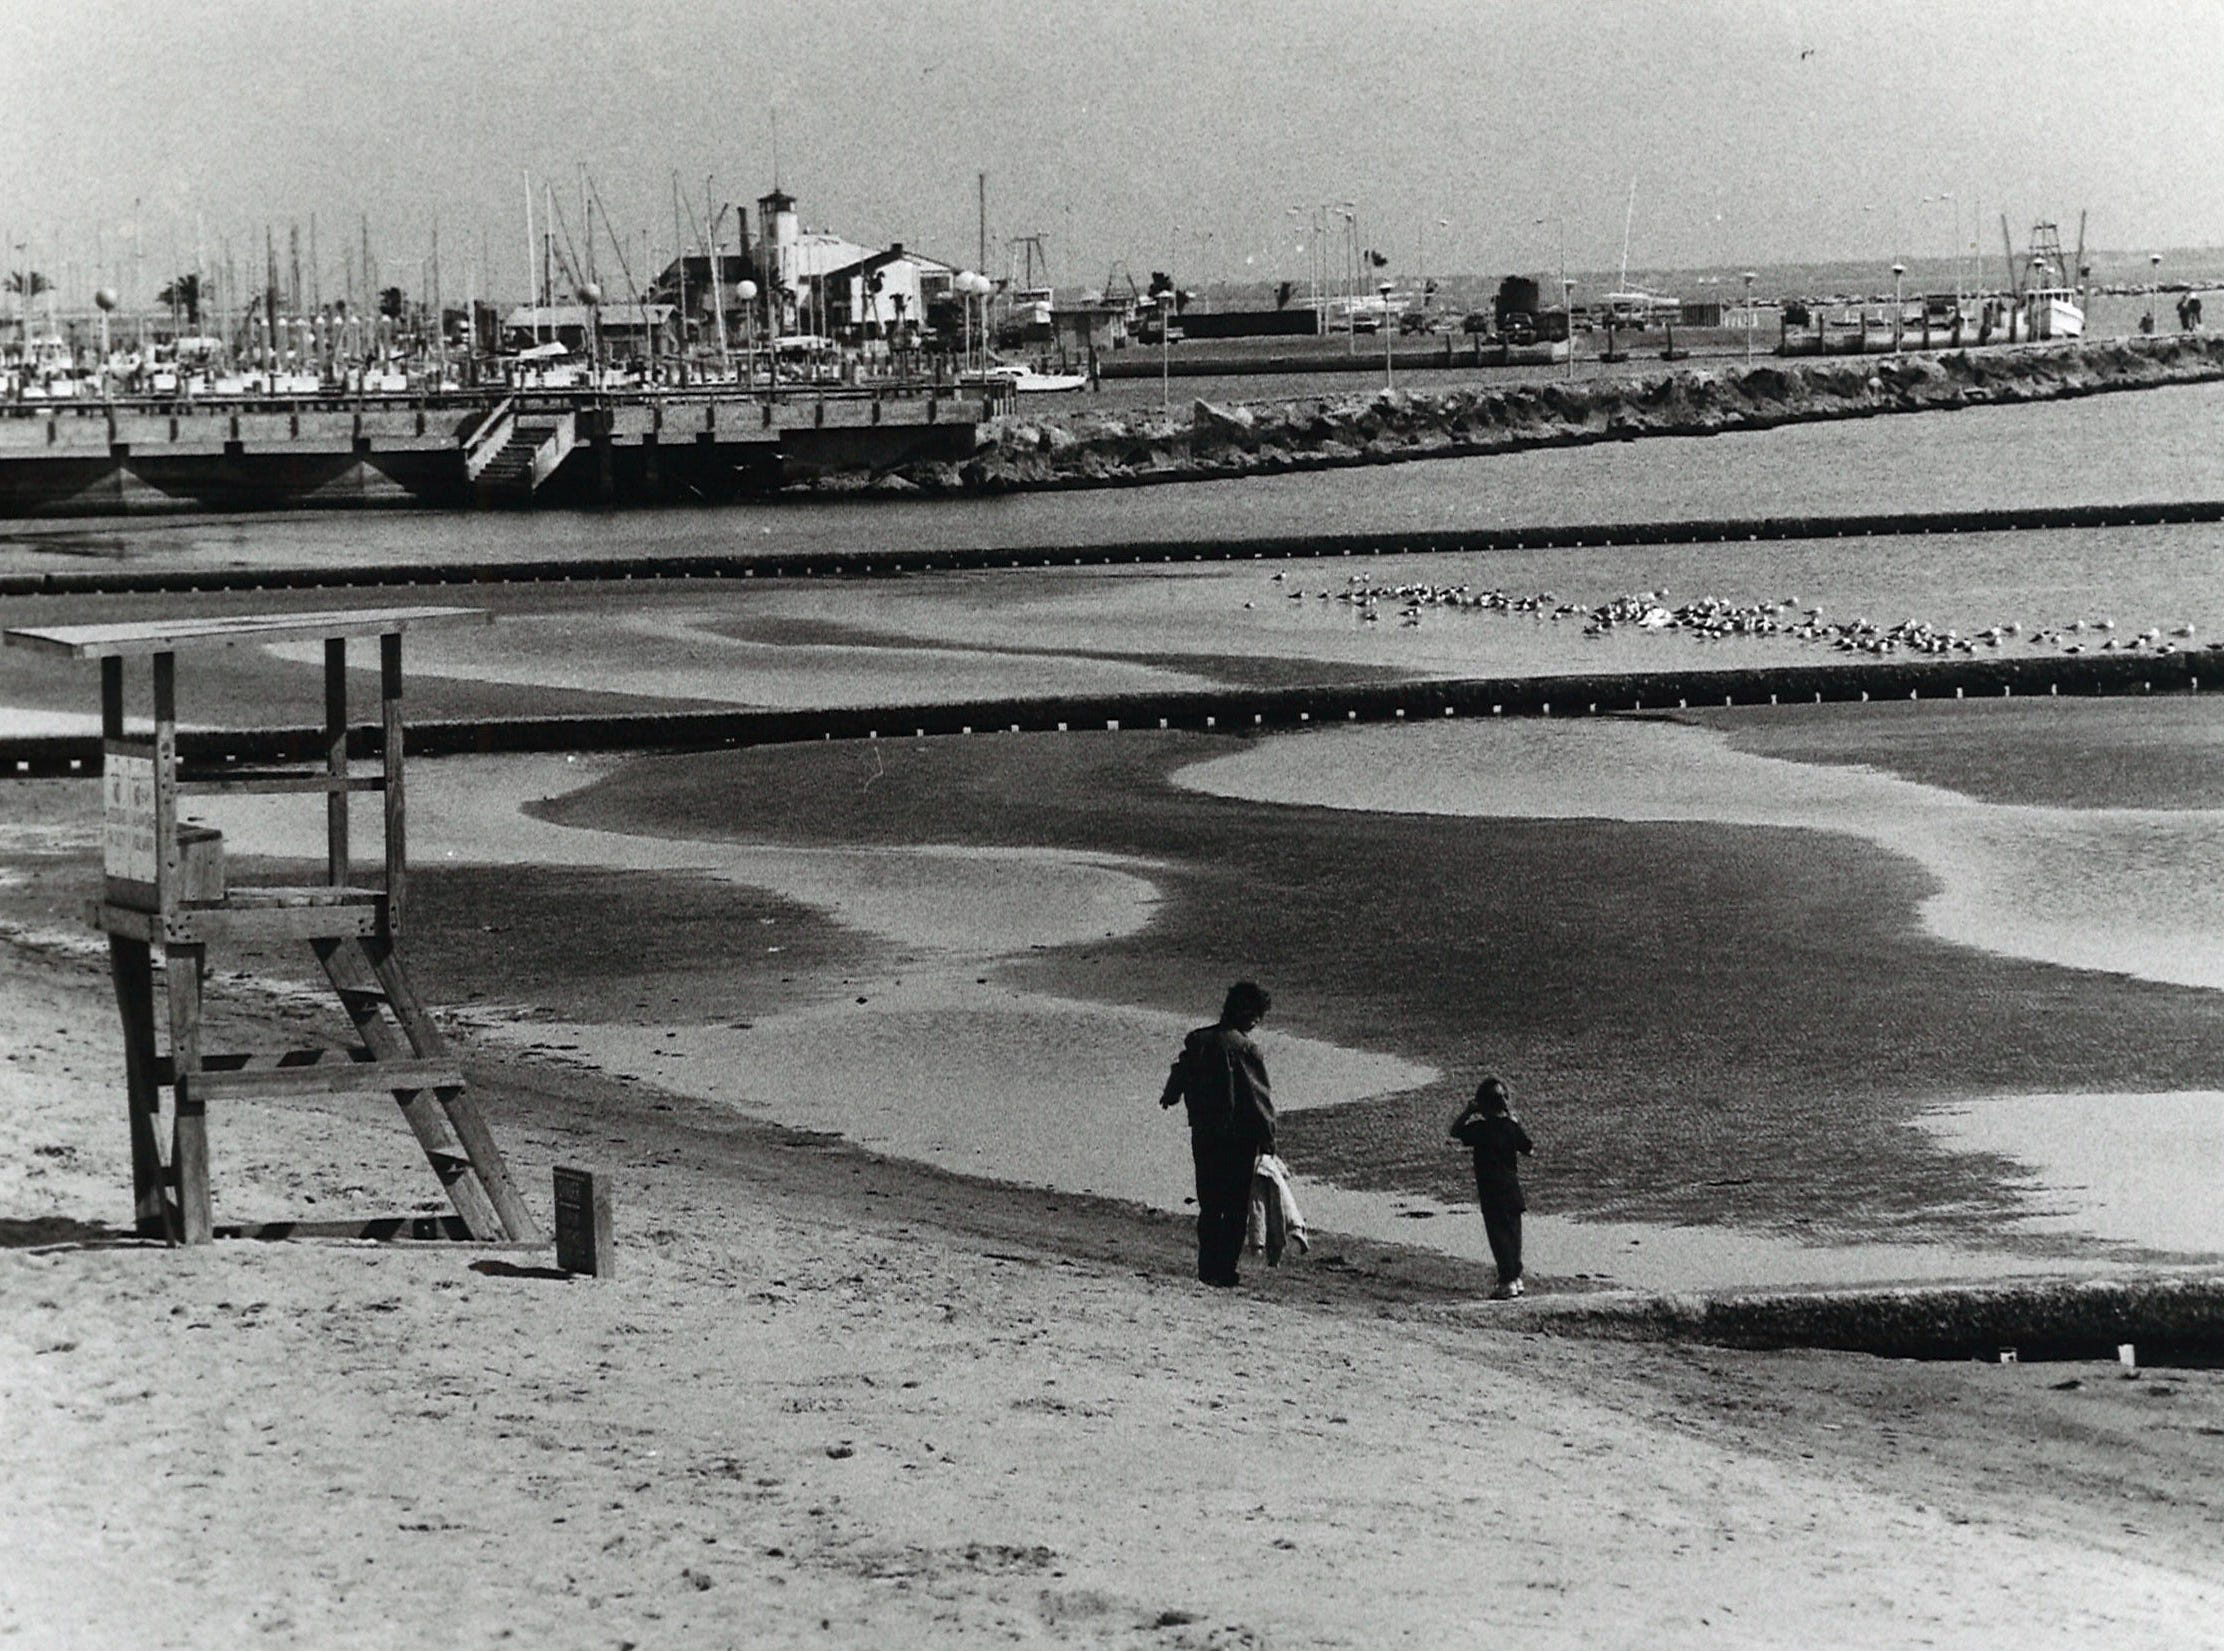 Gwen Smith and daughter, Jesse, both visiting from Hamlin, Texas, walk along the water's edge at McGee Beach in downtown Corpus Christi on Feb. 27, 1992.